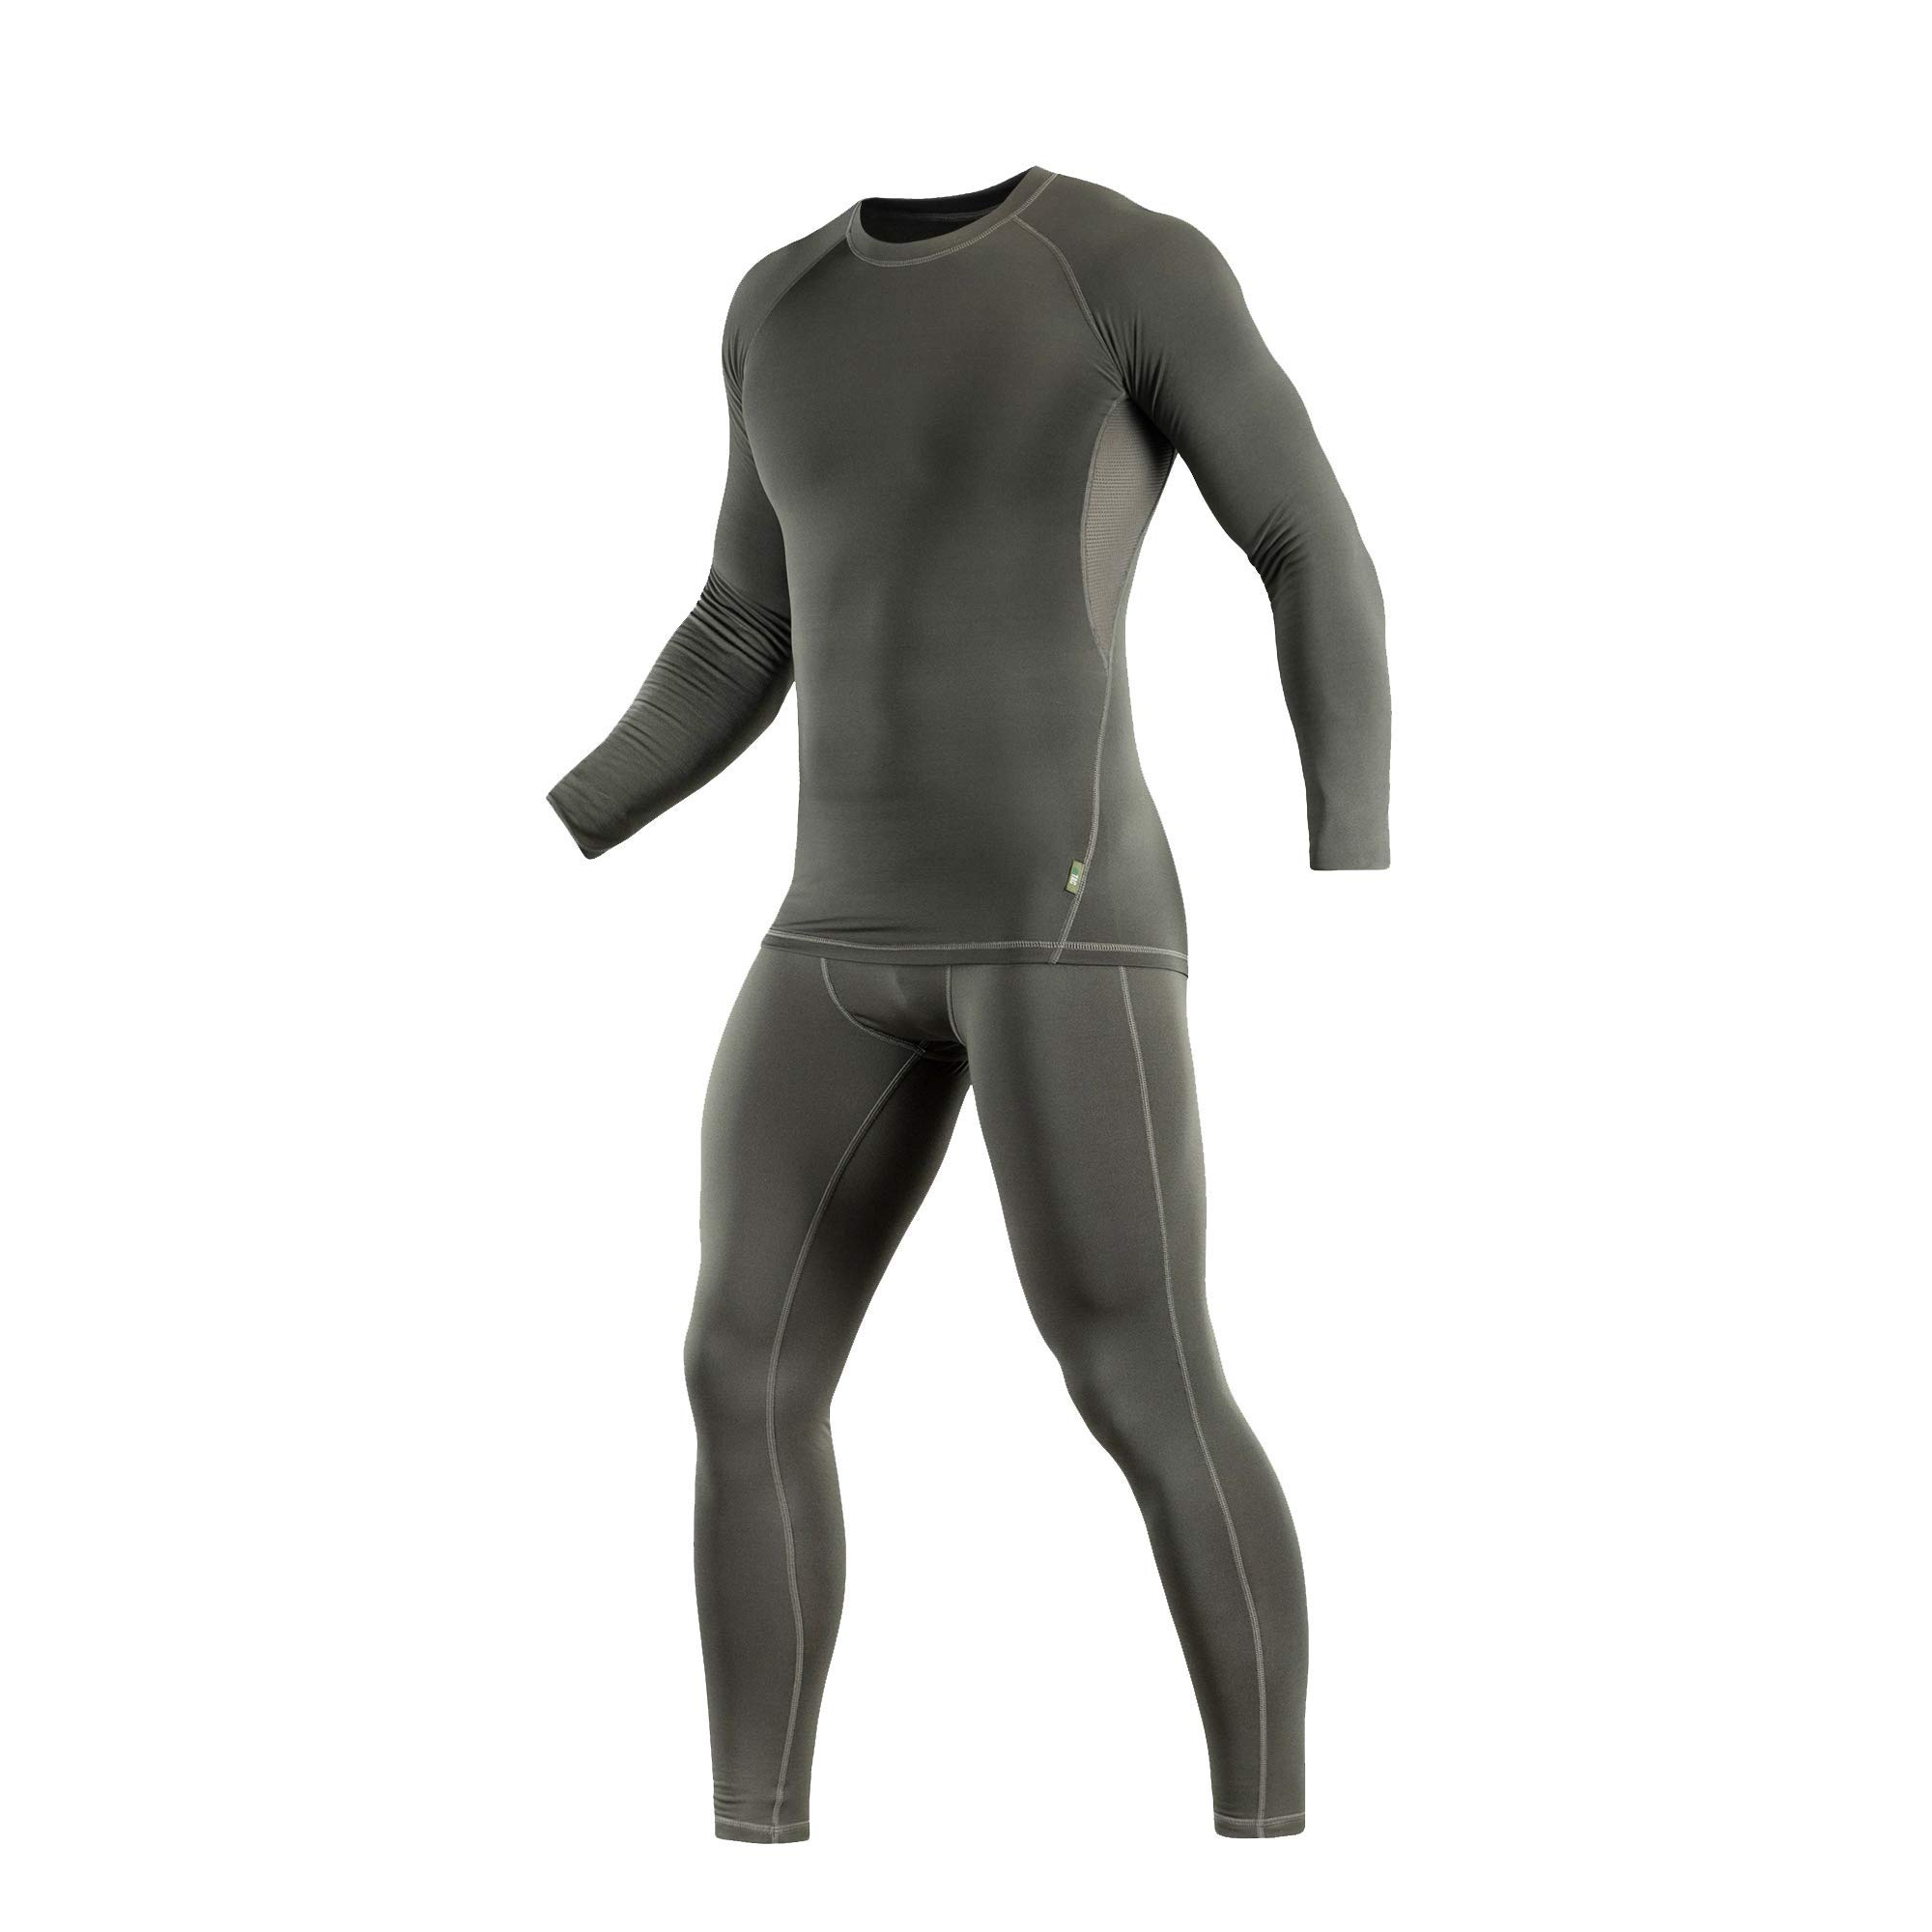 M-Tac Thermal Underwear Set for Men Base Layer Fleece Lined Top & Bottom Ultra-Soft (Olive, L) by M-Tac